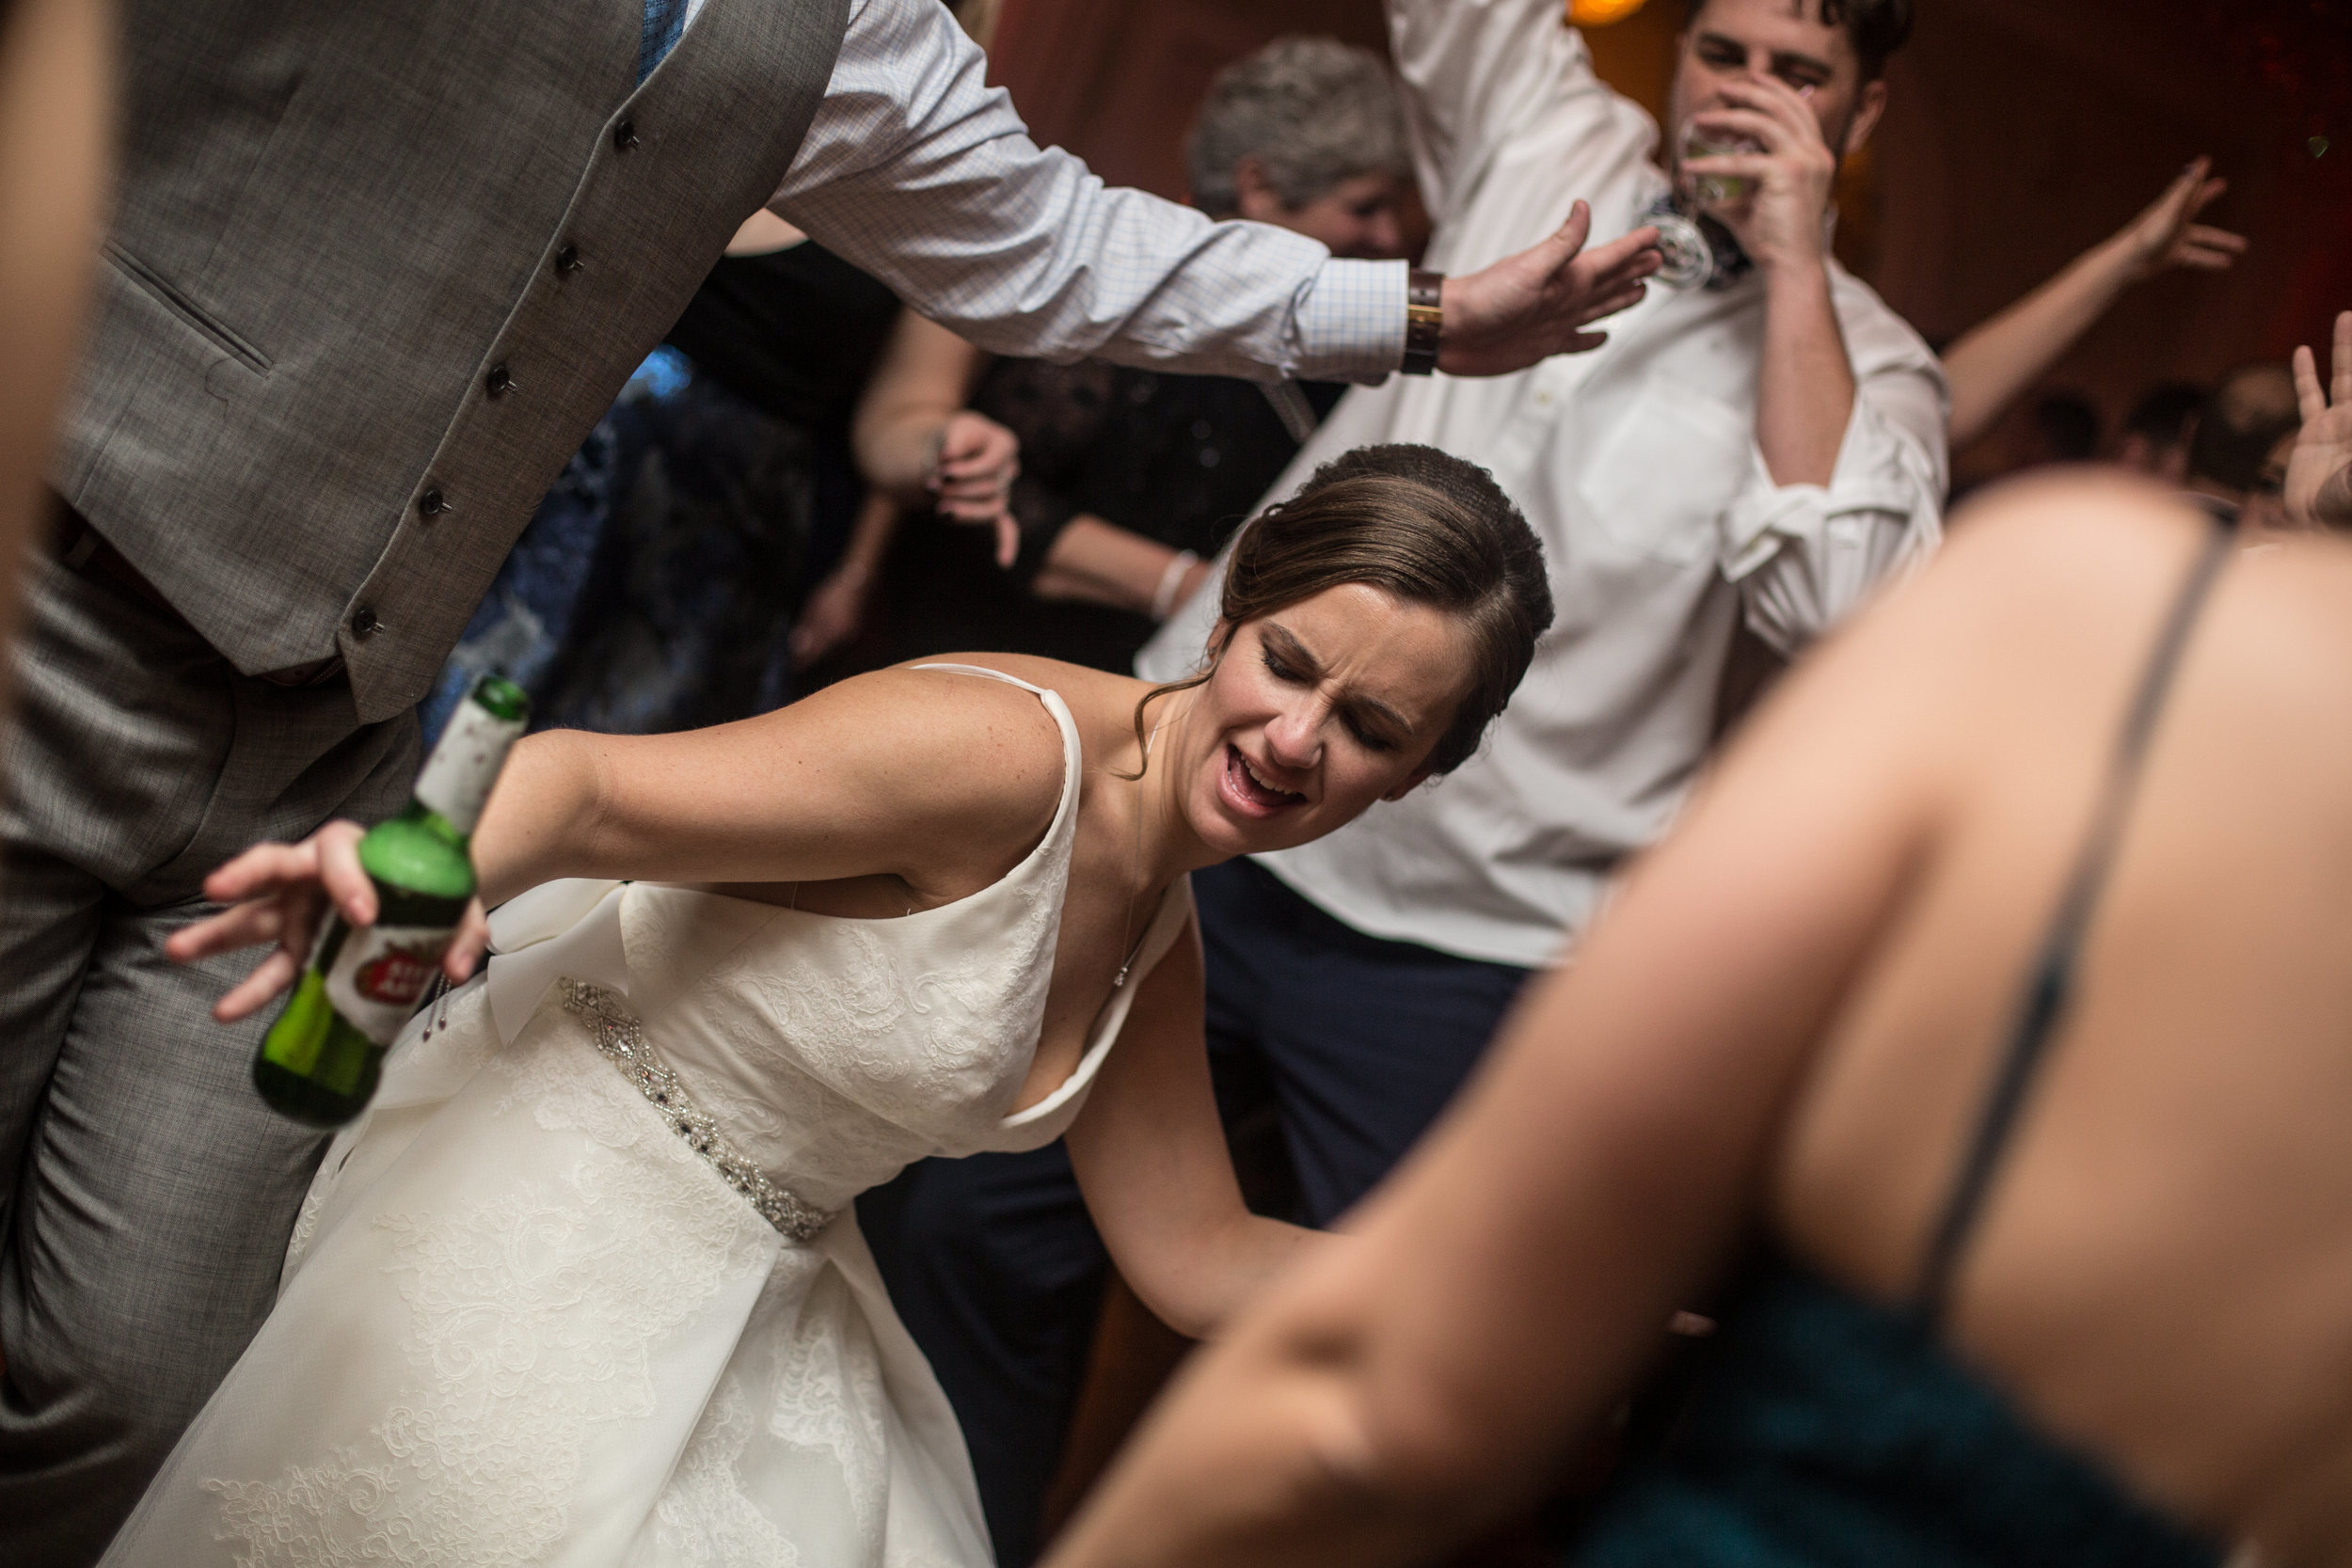 Bride dancing on the dance floor during the wedding reception